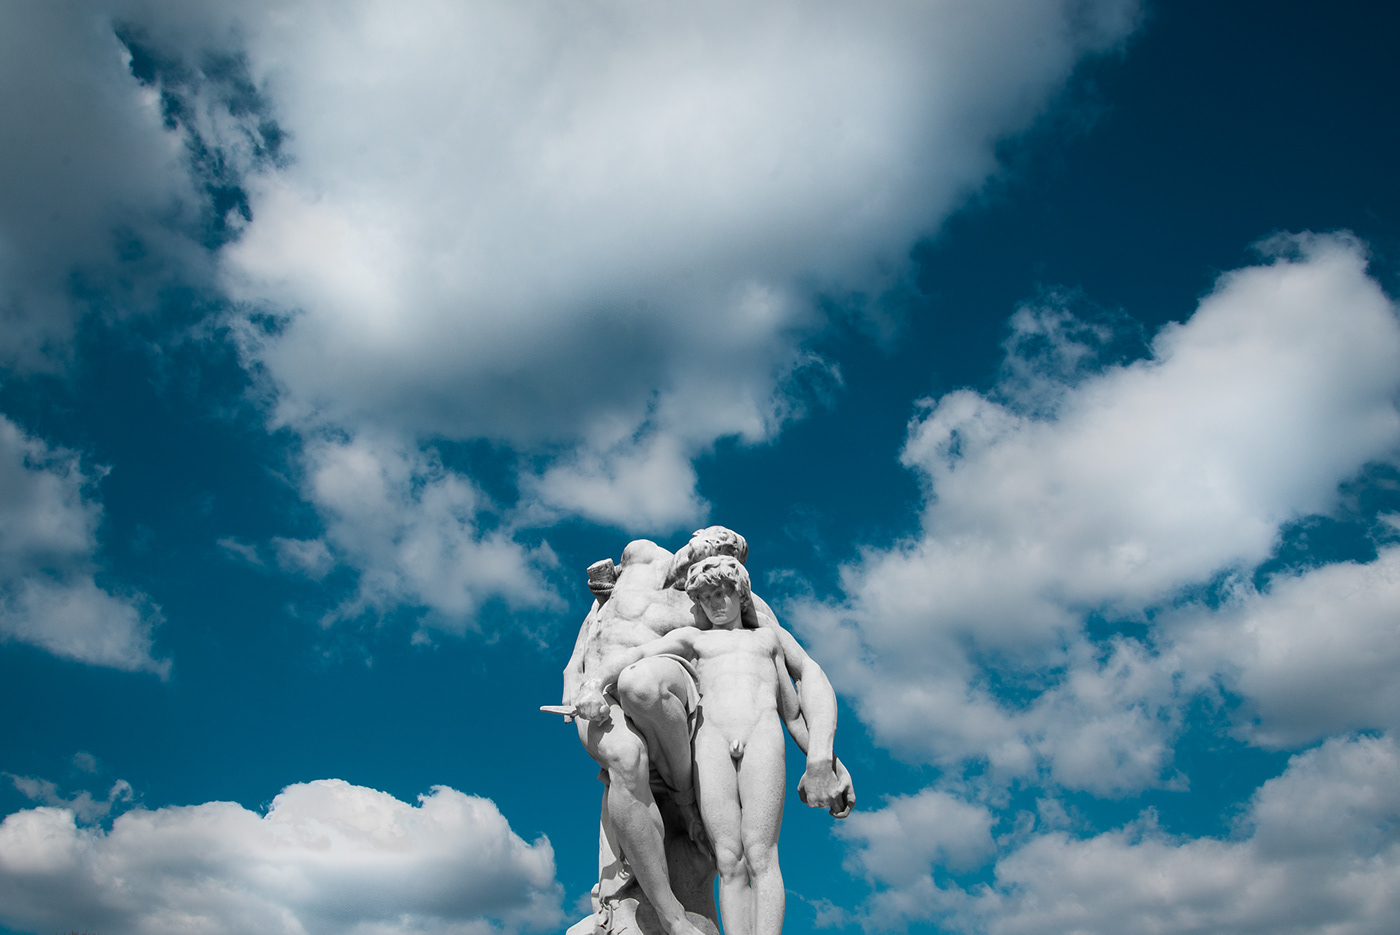 Image may contain: sky, cloud and statue